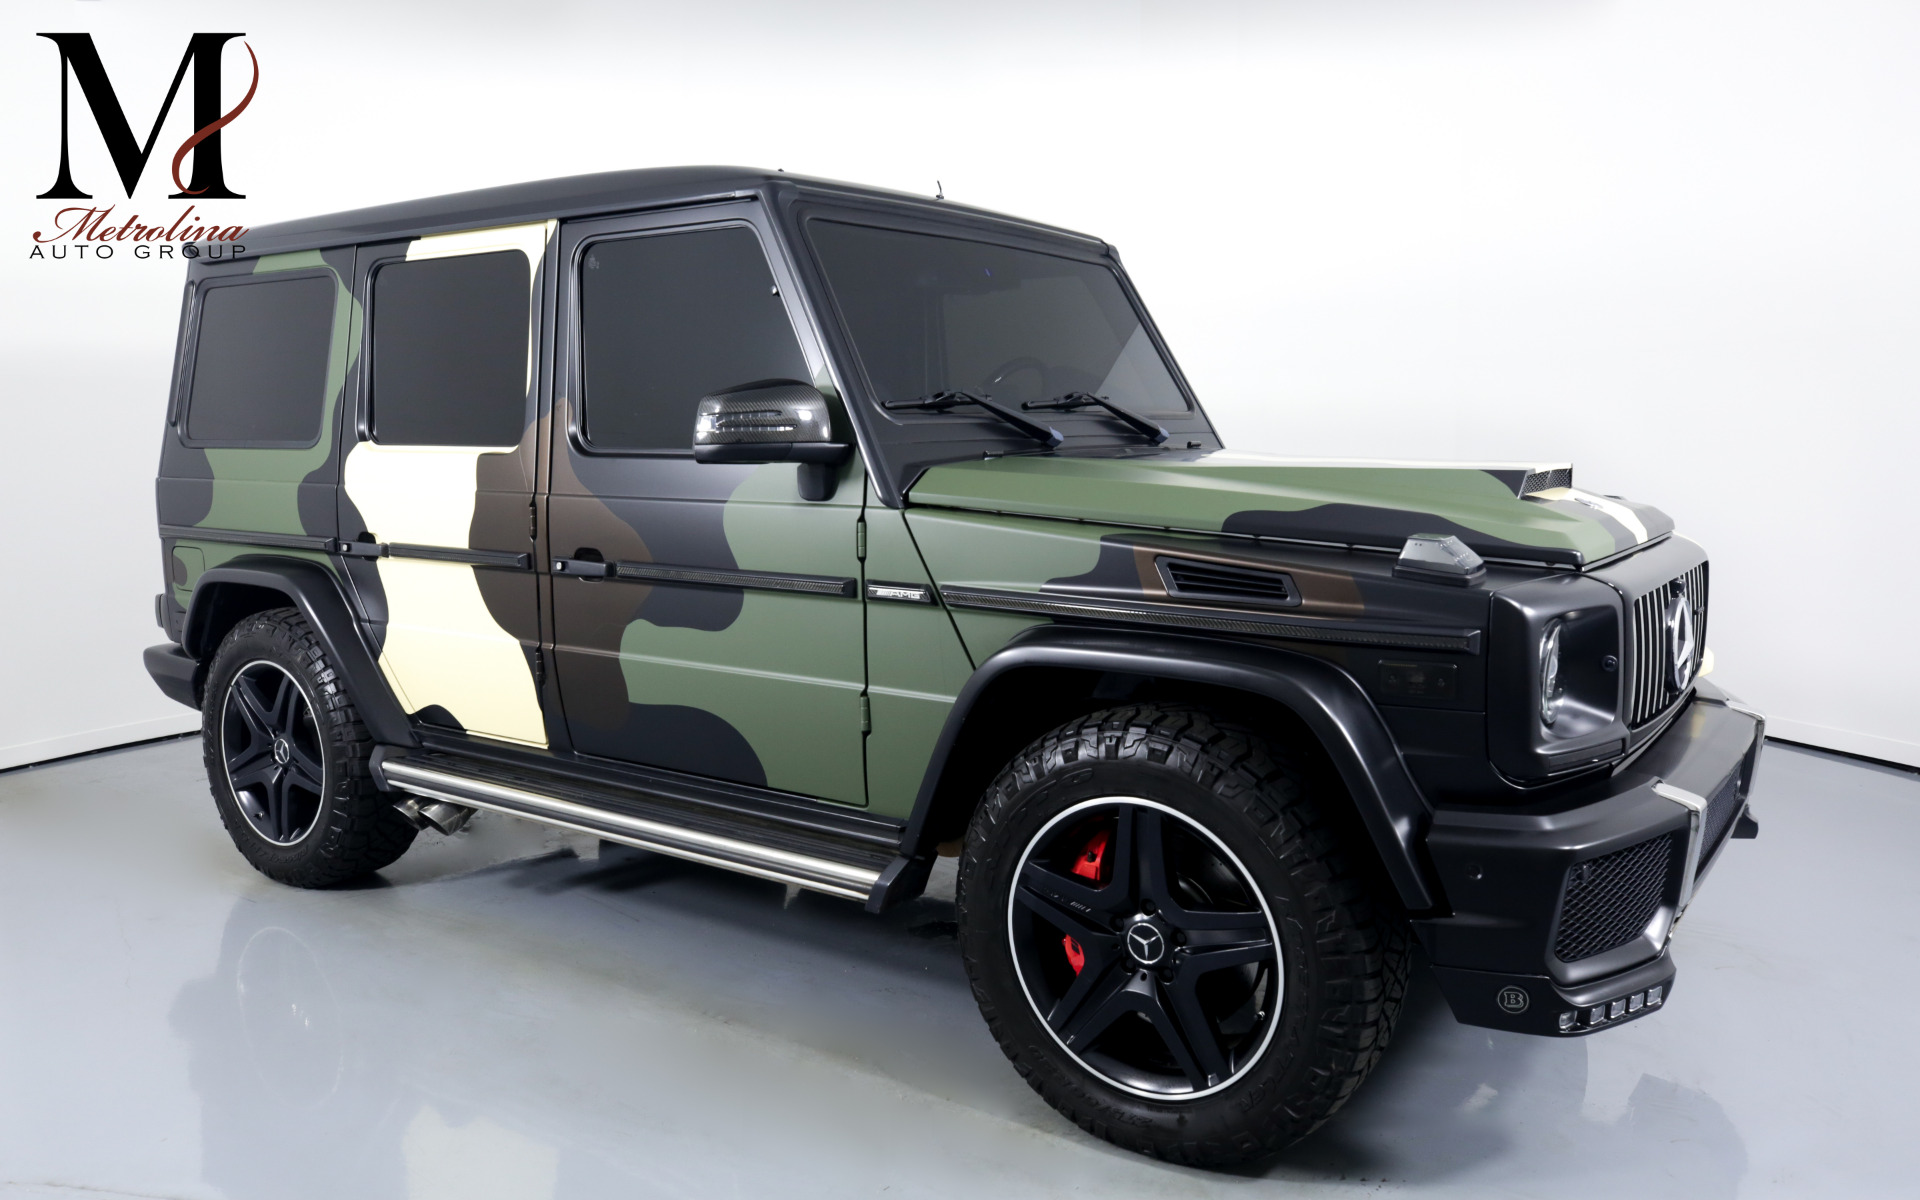 Used 2013 Mercedes-Benz G-Class G 63 AMG for sale $84,996 at Metrolina Auto Group in Charlotte NC 28217 - 1